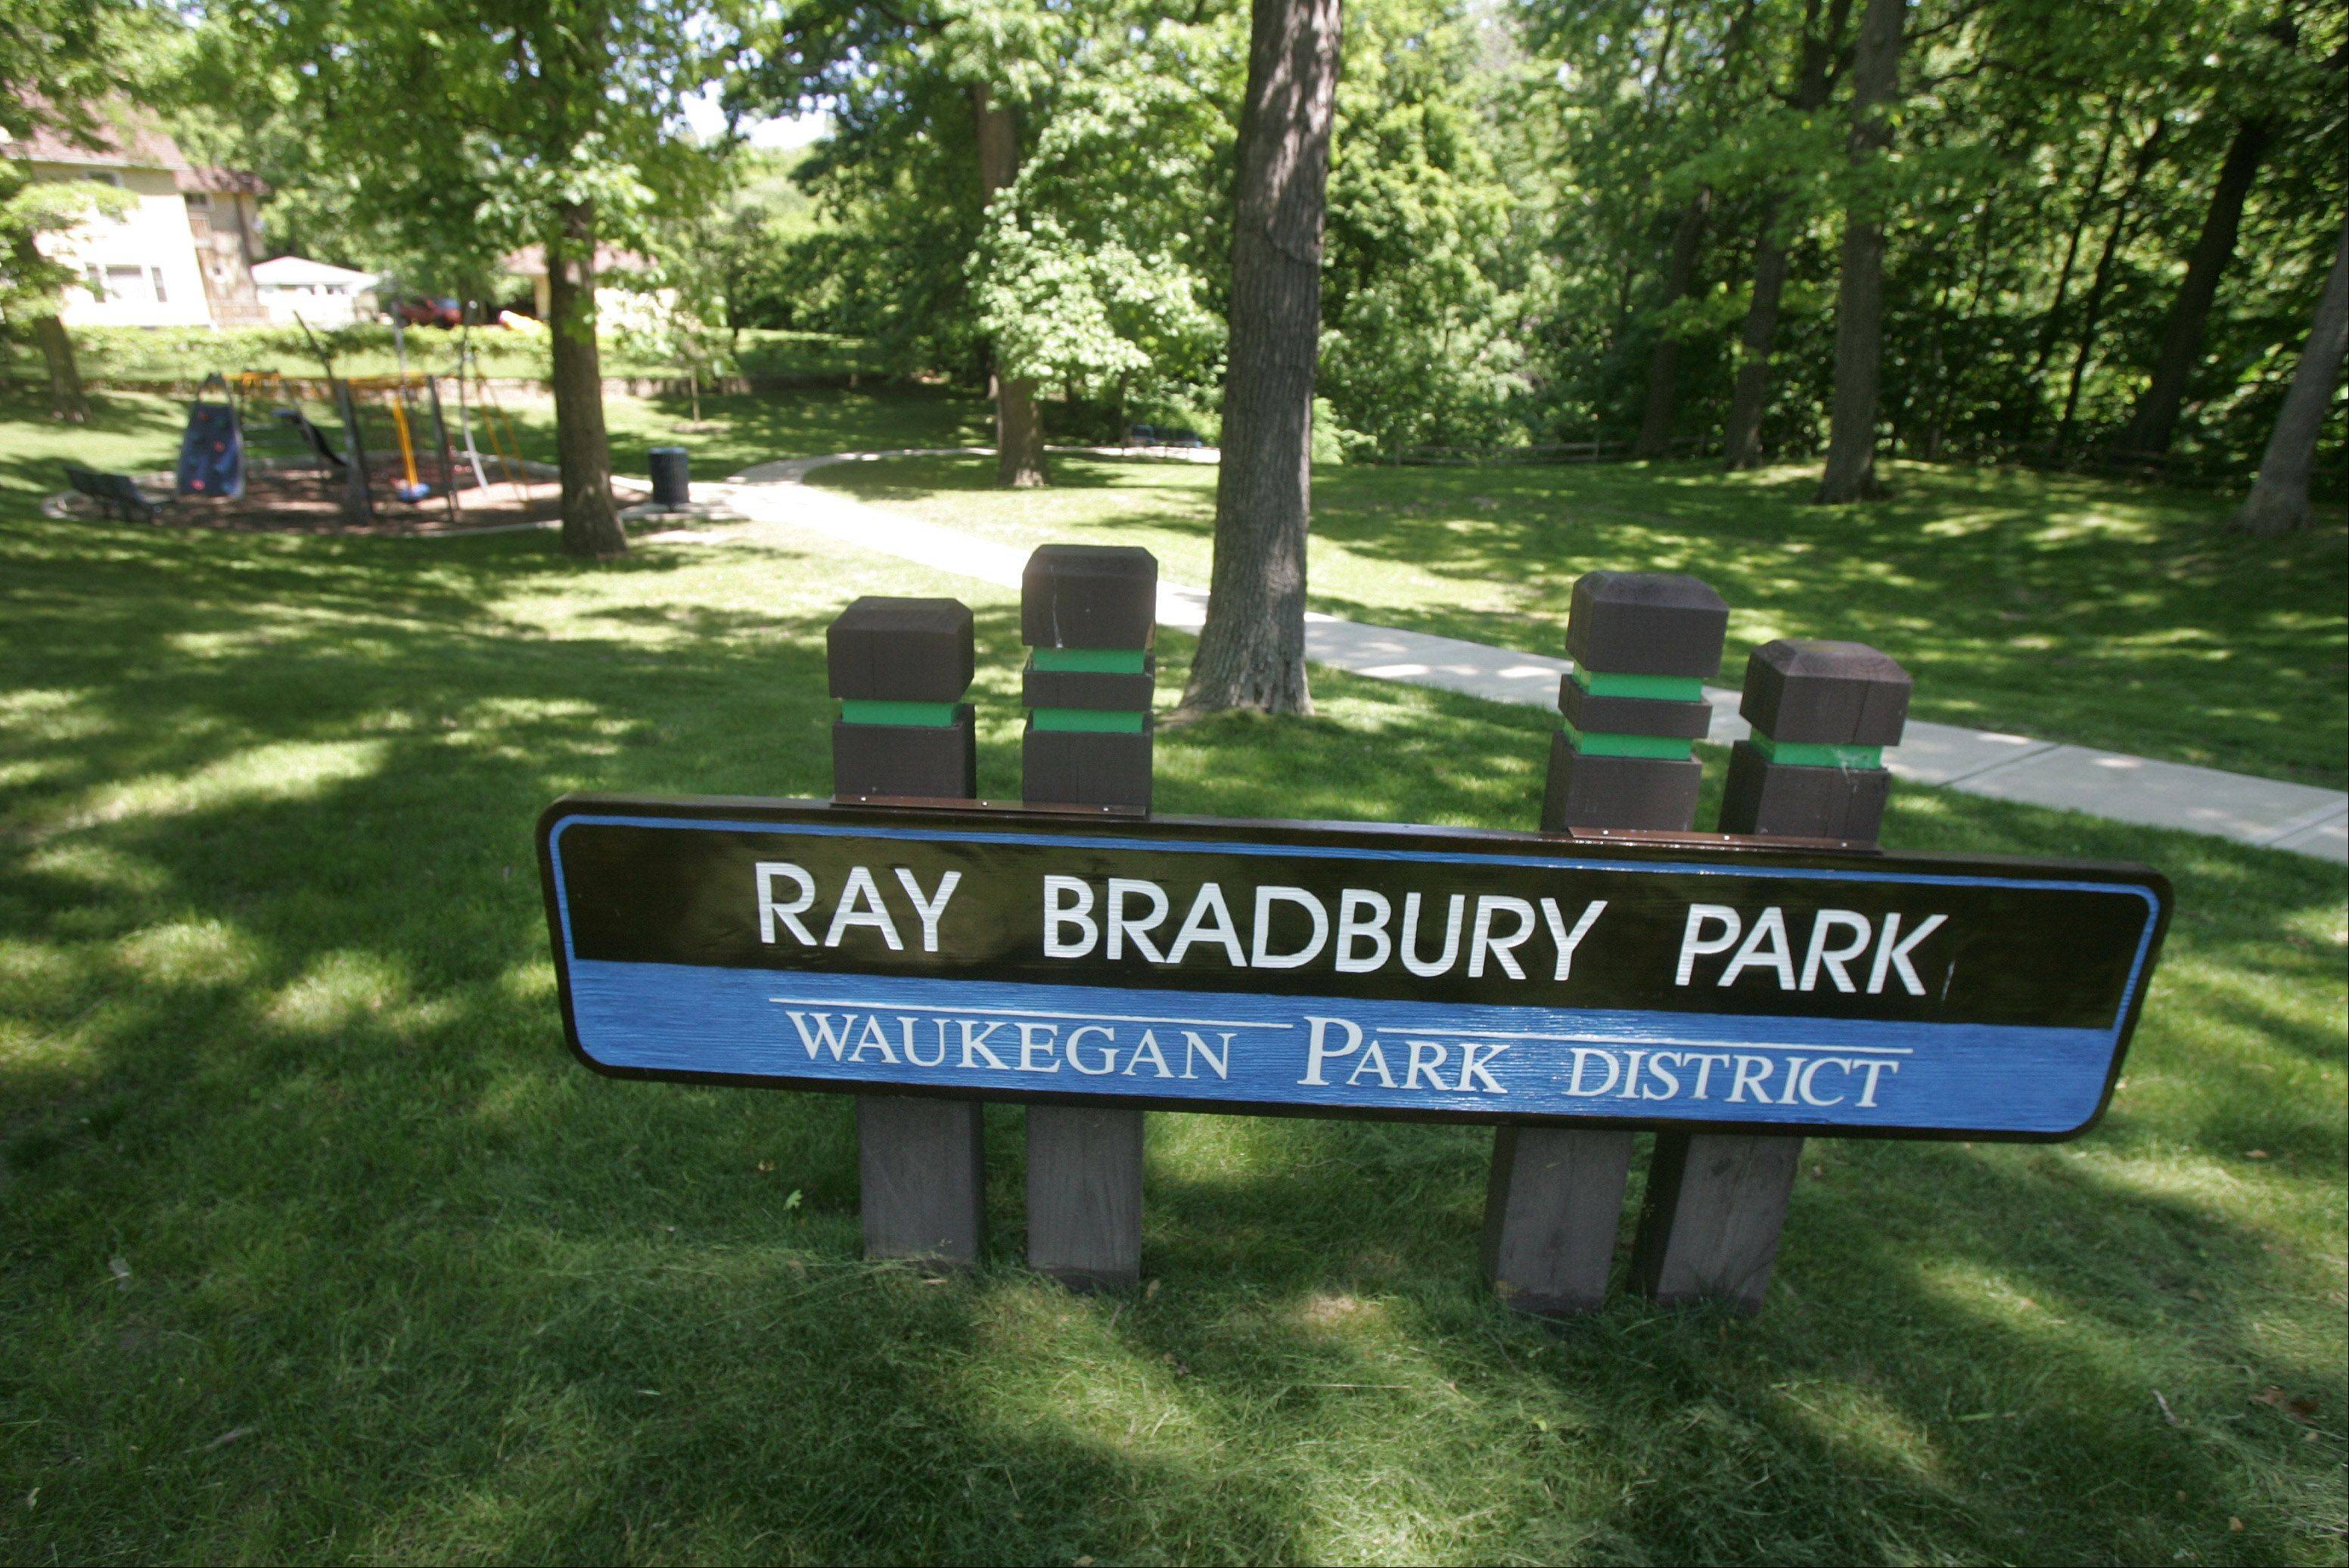 Ray Bradbury Park in Waukegan.